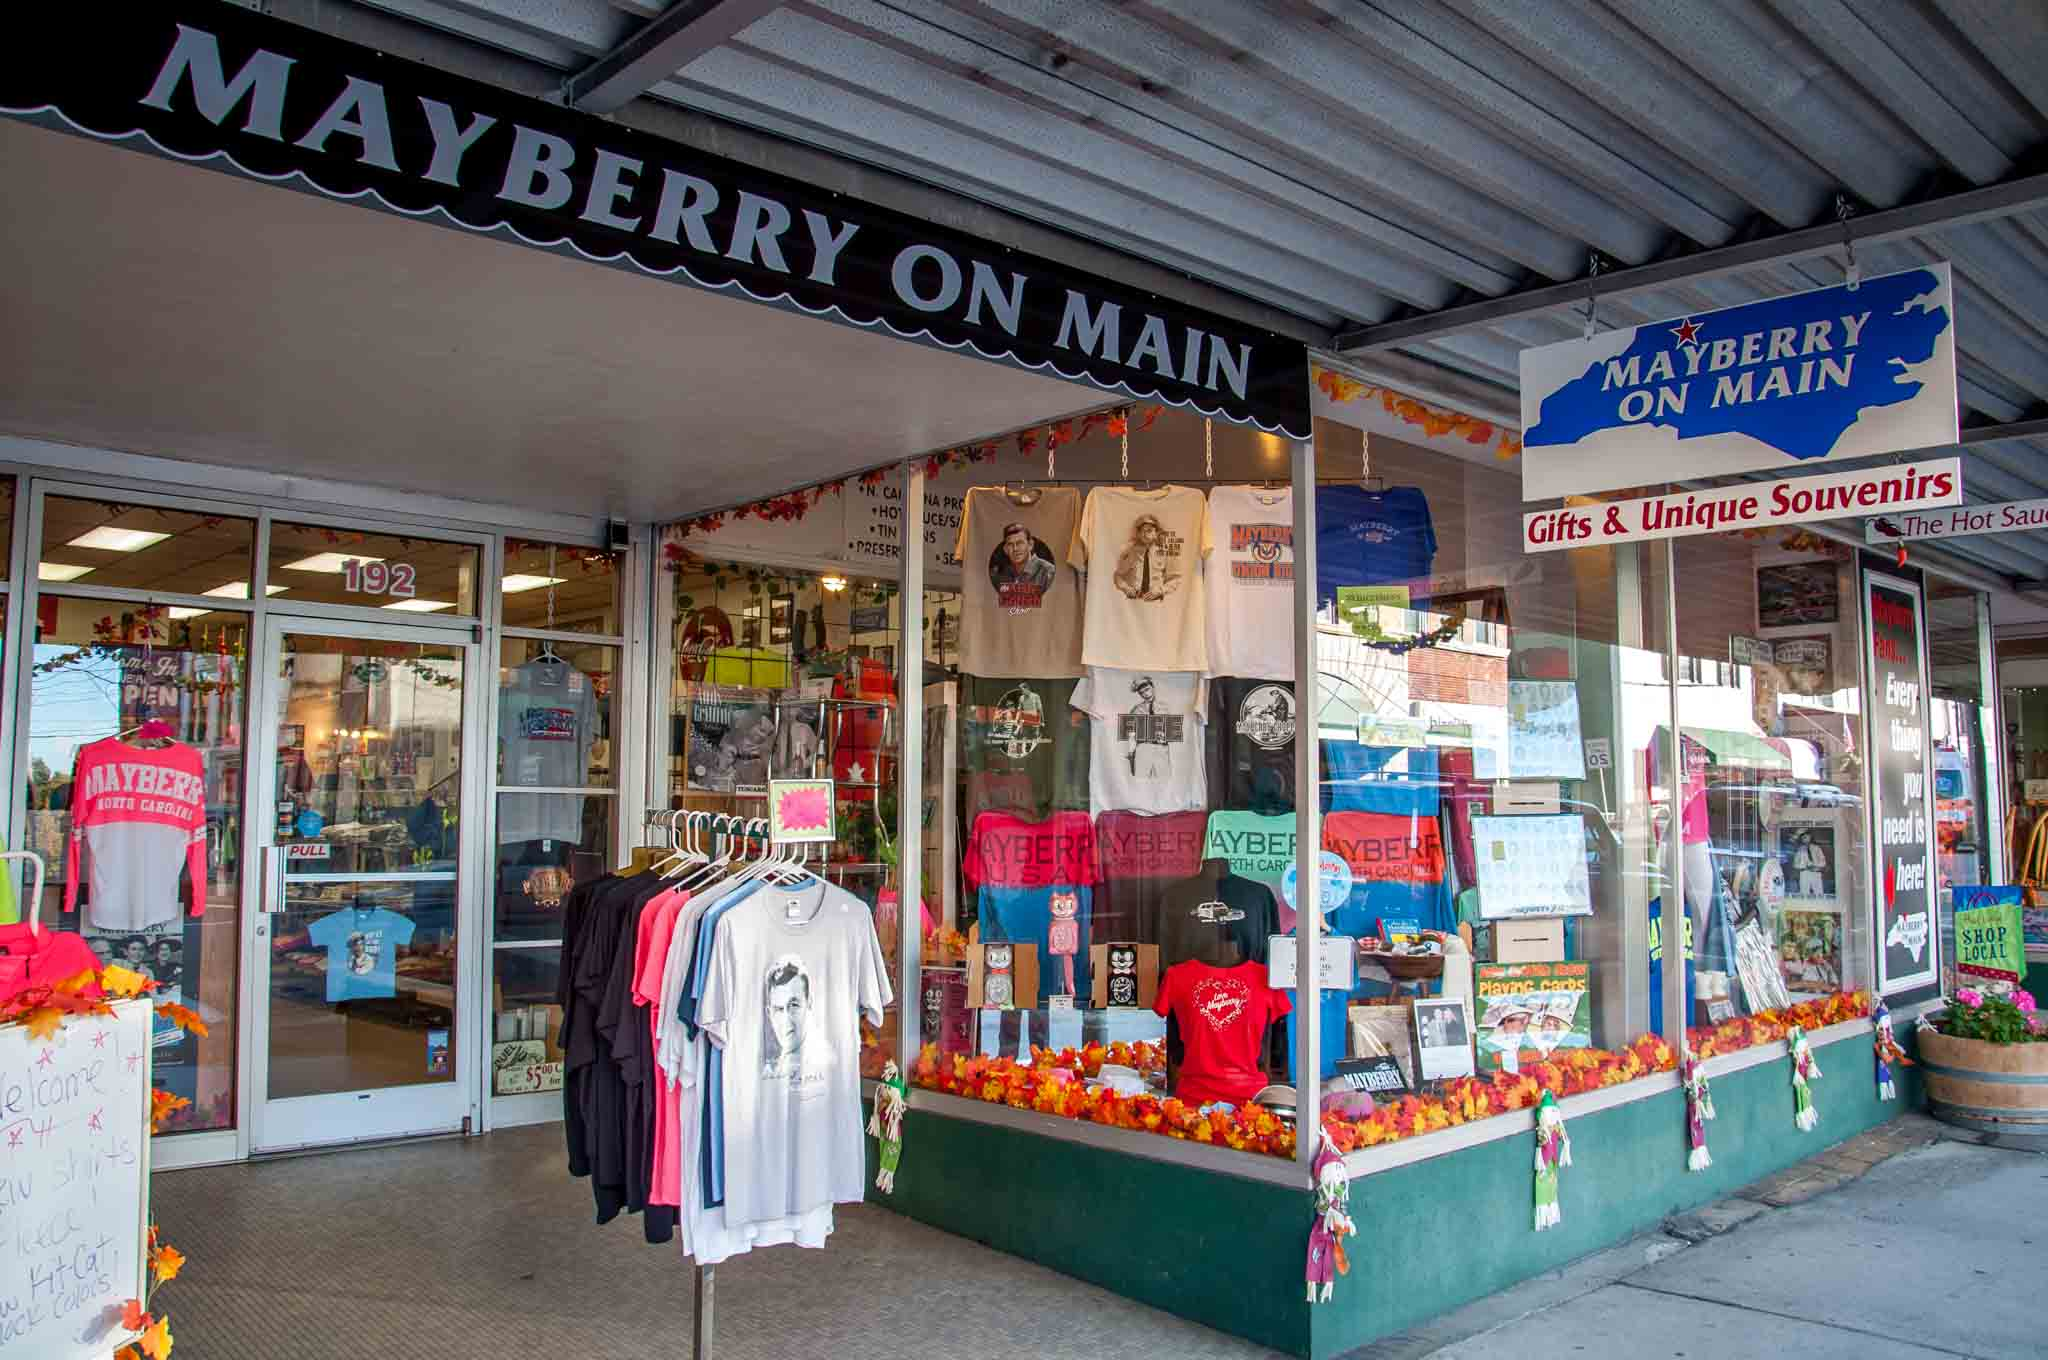 Mayberry on Main, a souvenir shop in Mount Airy, North Carolina